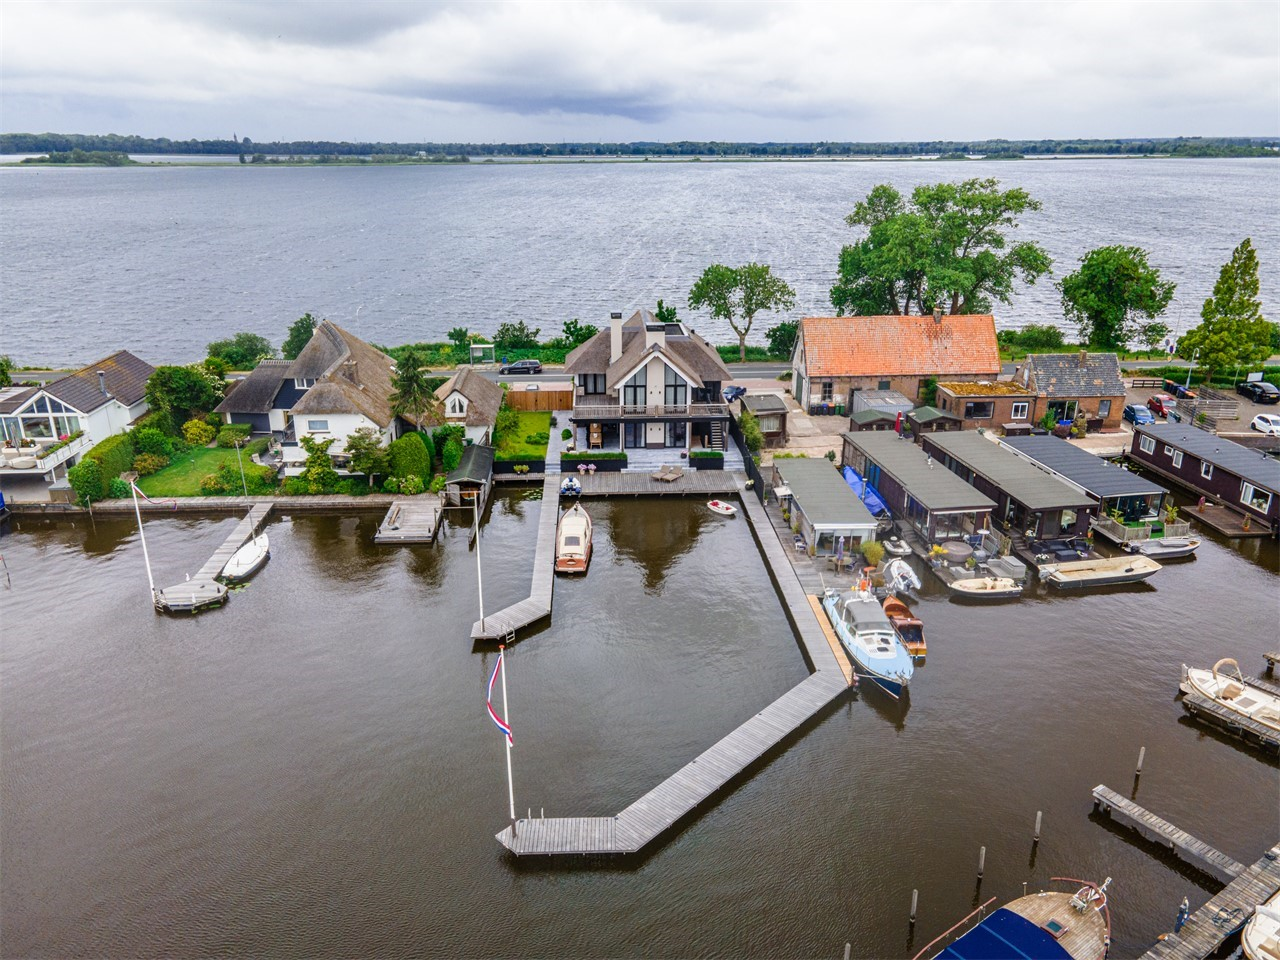 Lakehouse Loosdrecht - Lakehouse Loosdrecht